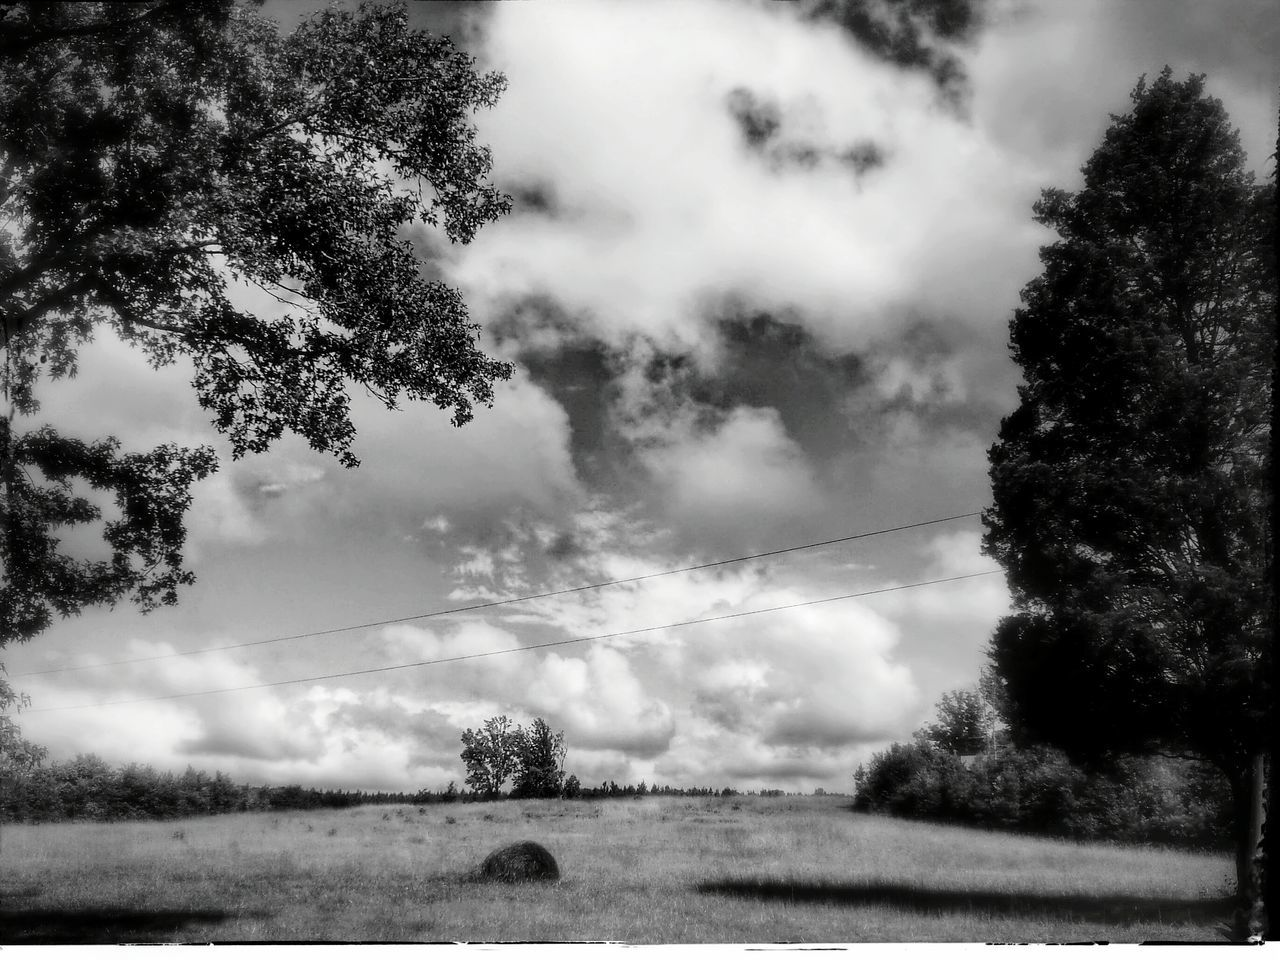 View Of Trees In Field Against Cloudy Sky